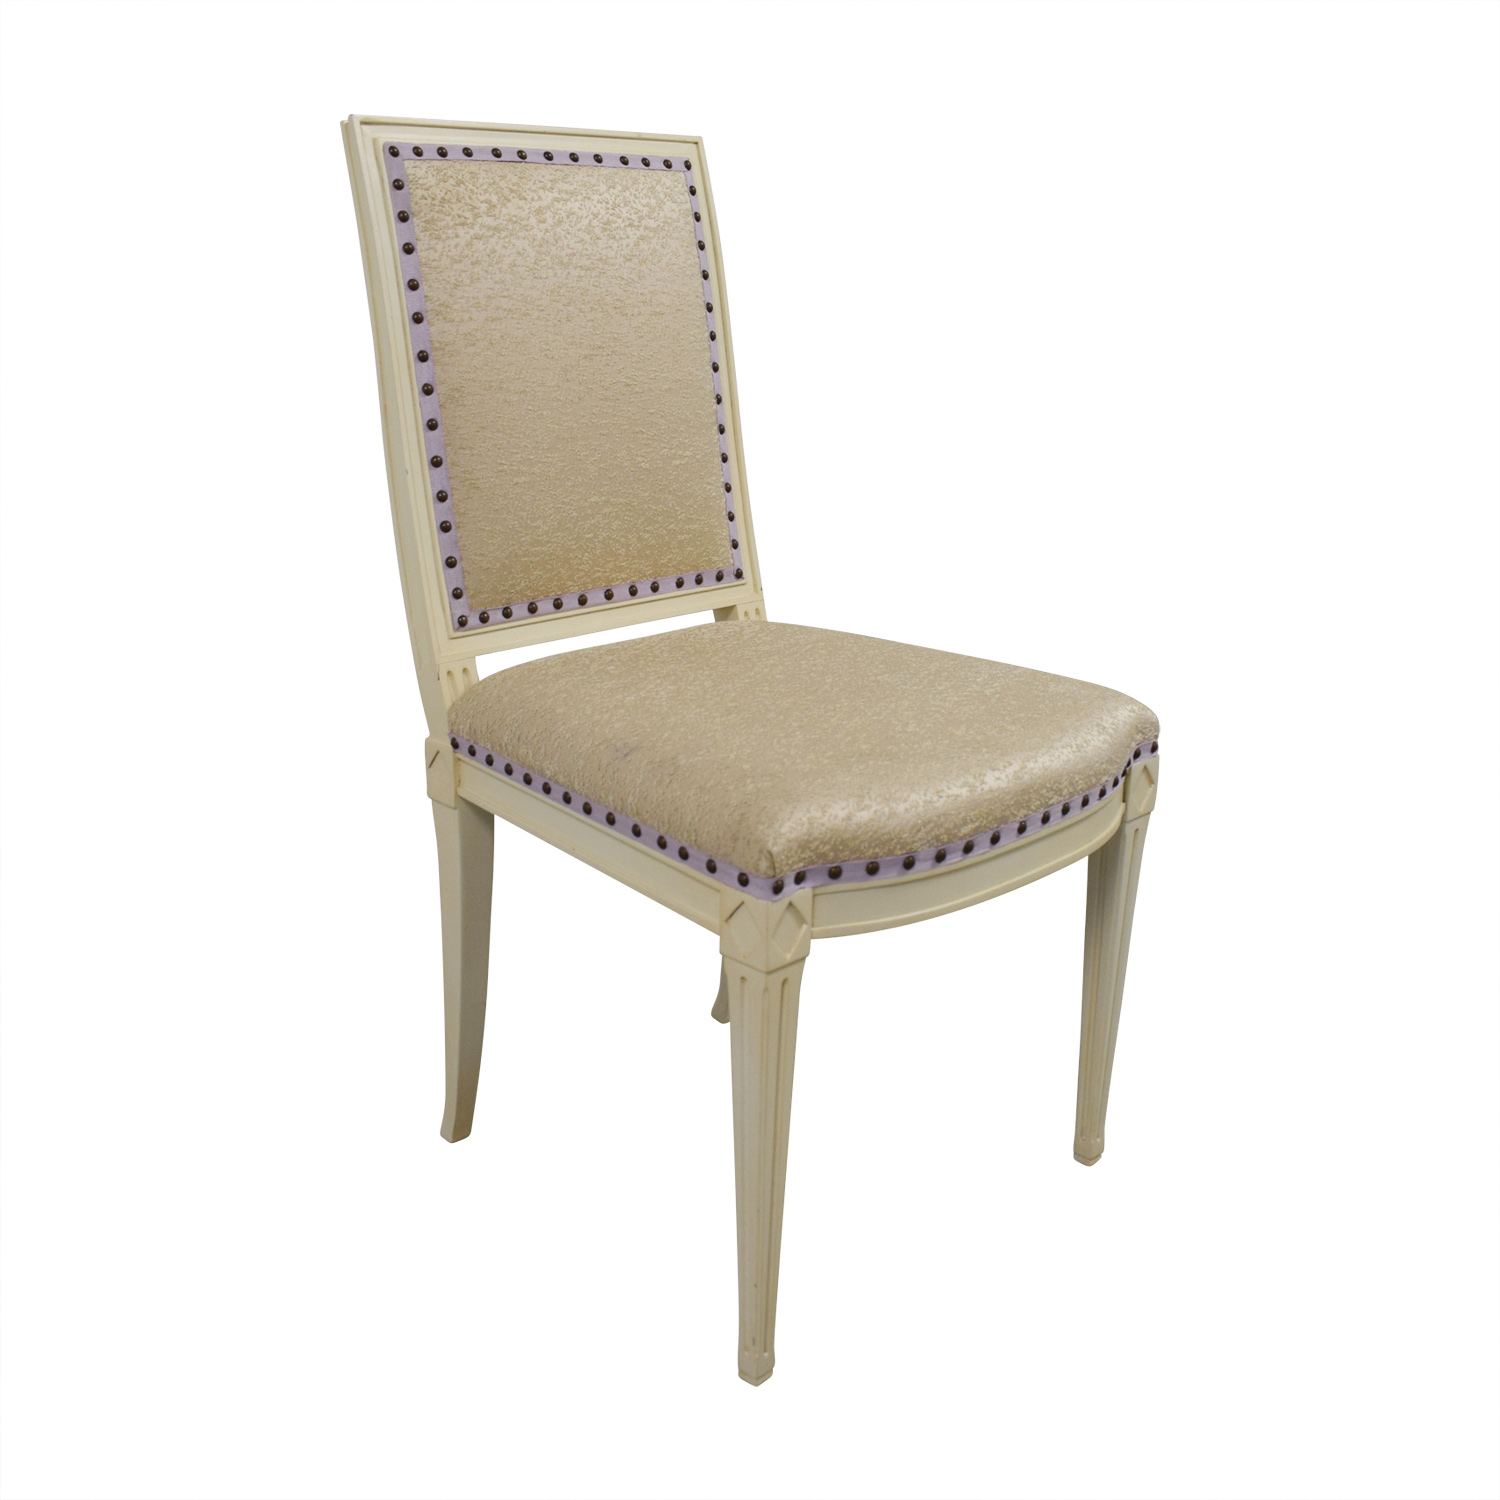 Custom Nailhead Upholstered Desk Chair for sale